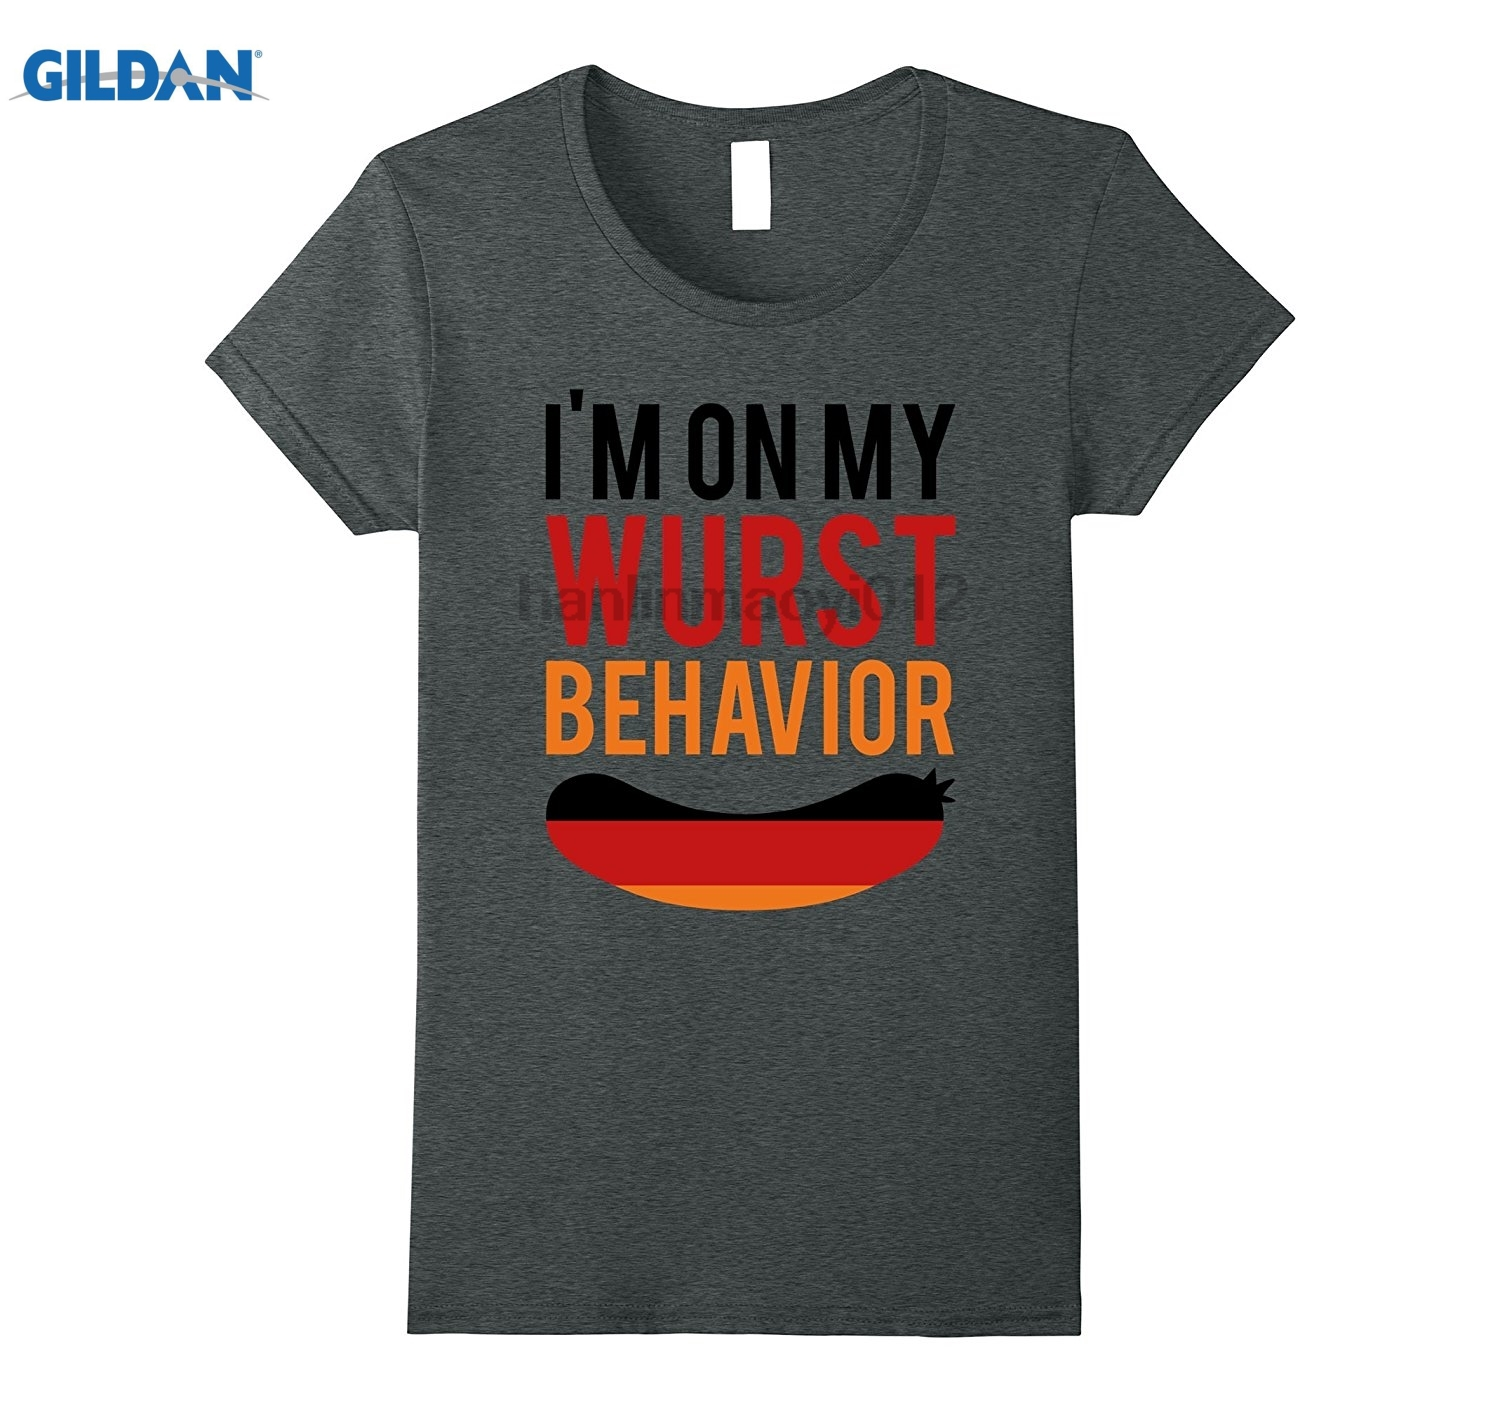 GILDAN Wurst Behavior Oktoberfest T-Shirt - Funny German Gift Tee sunglasses women T-shi ...